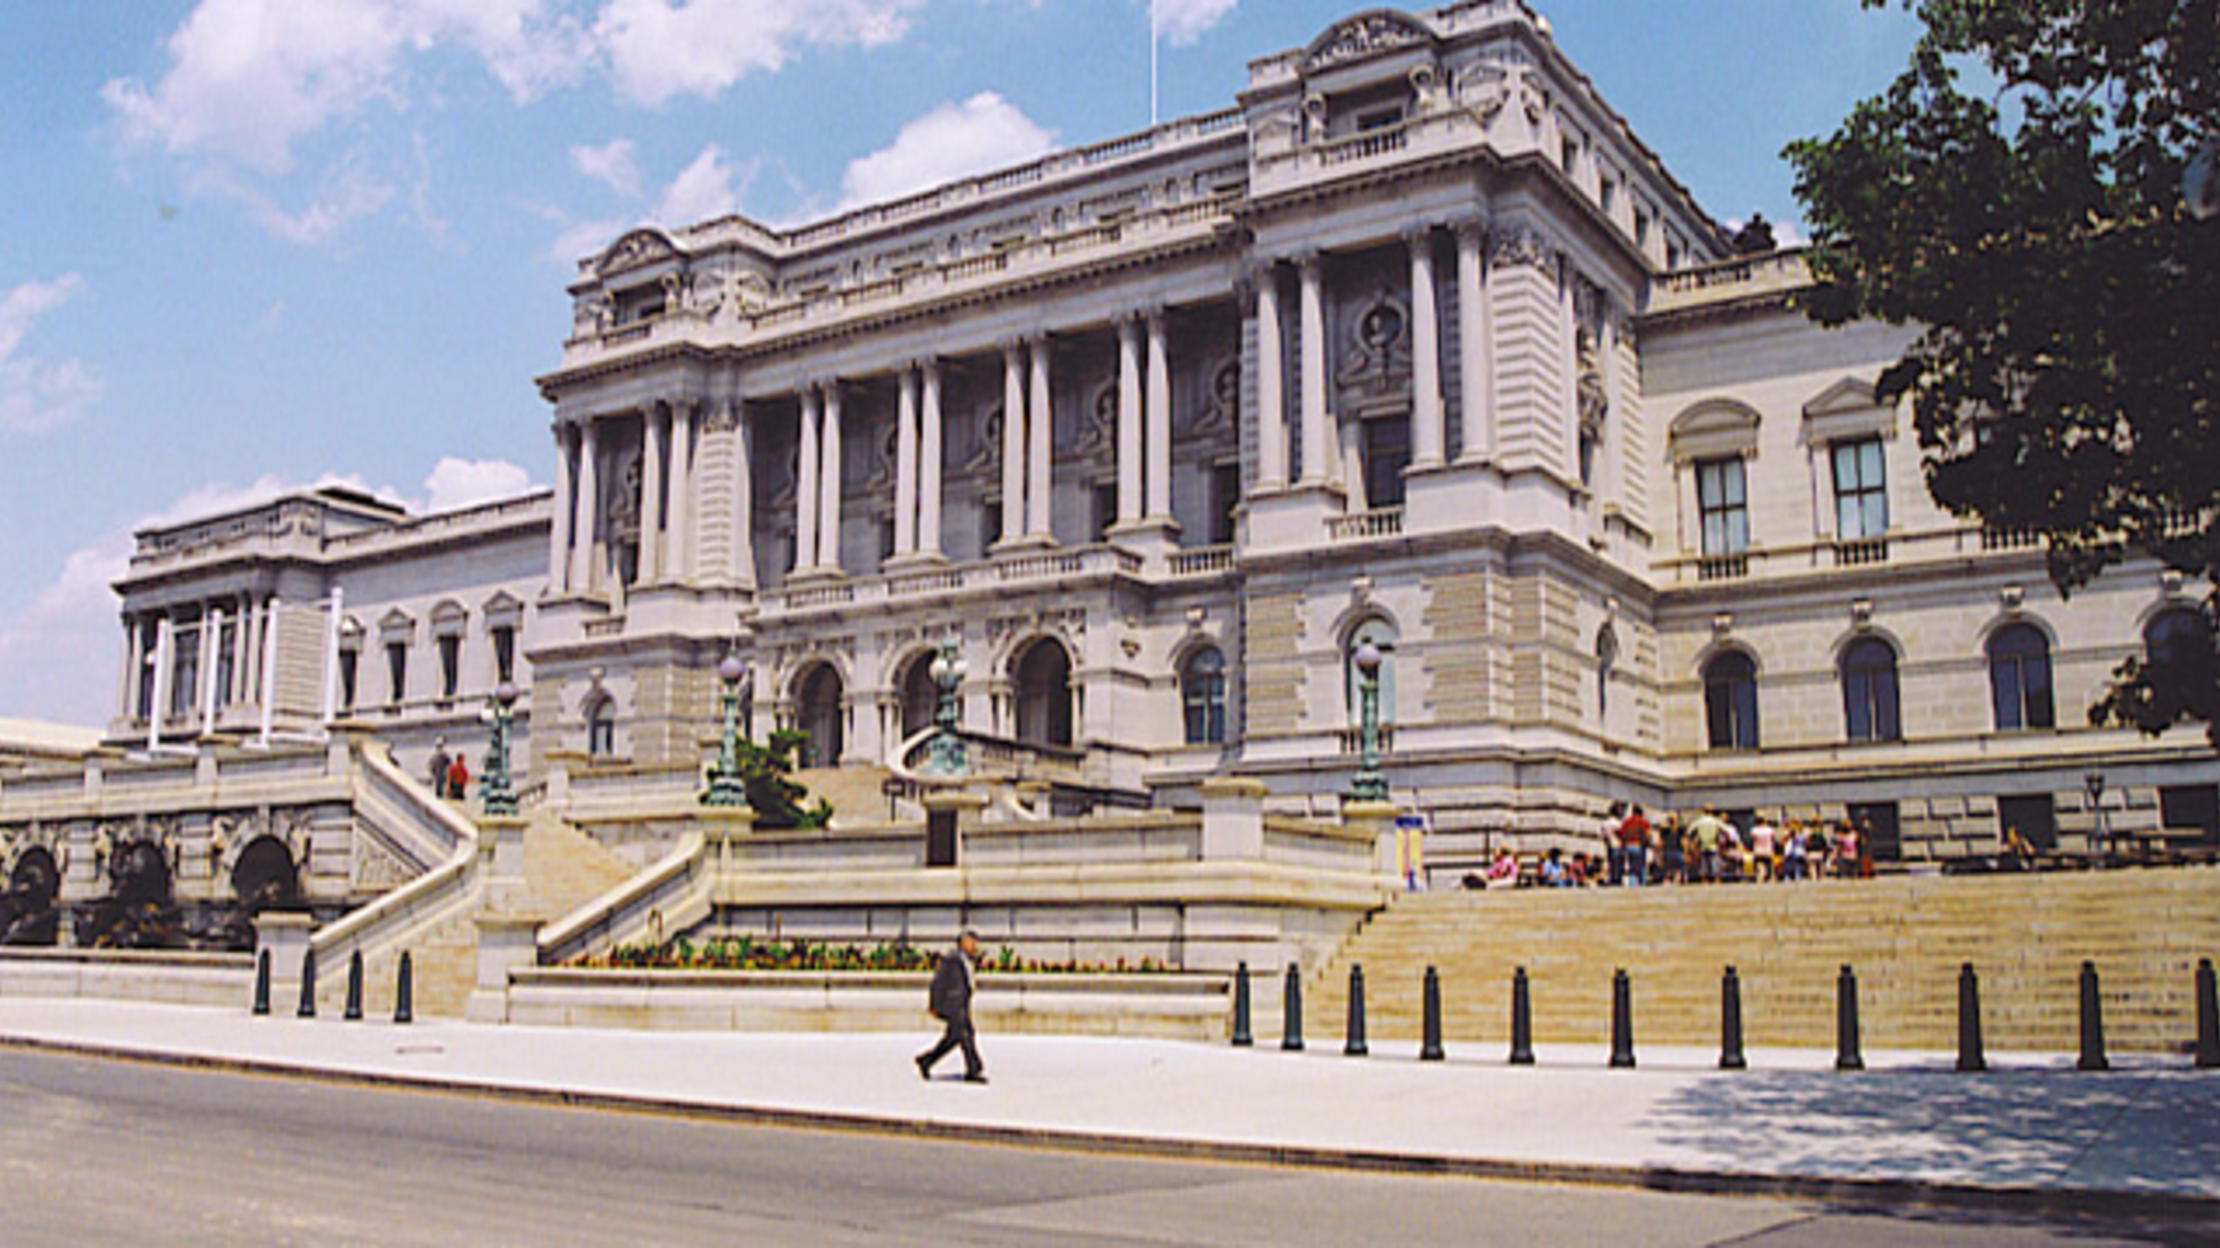 11 Facts About the Library of Congress | Mental Floss